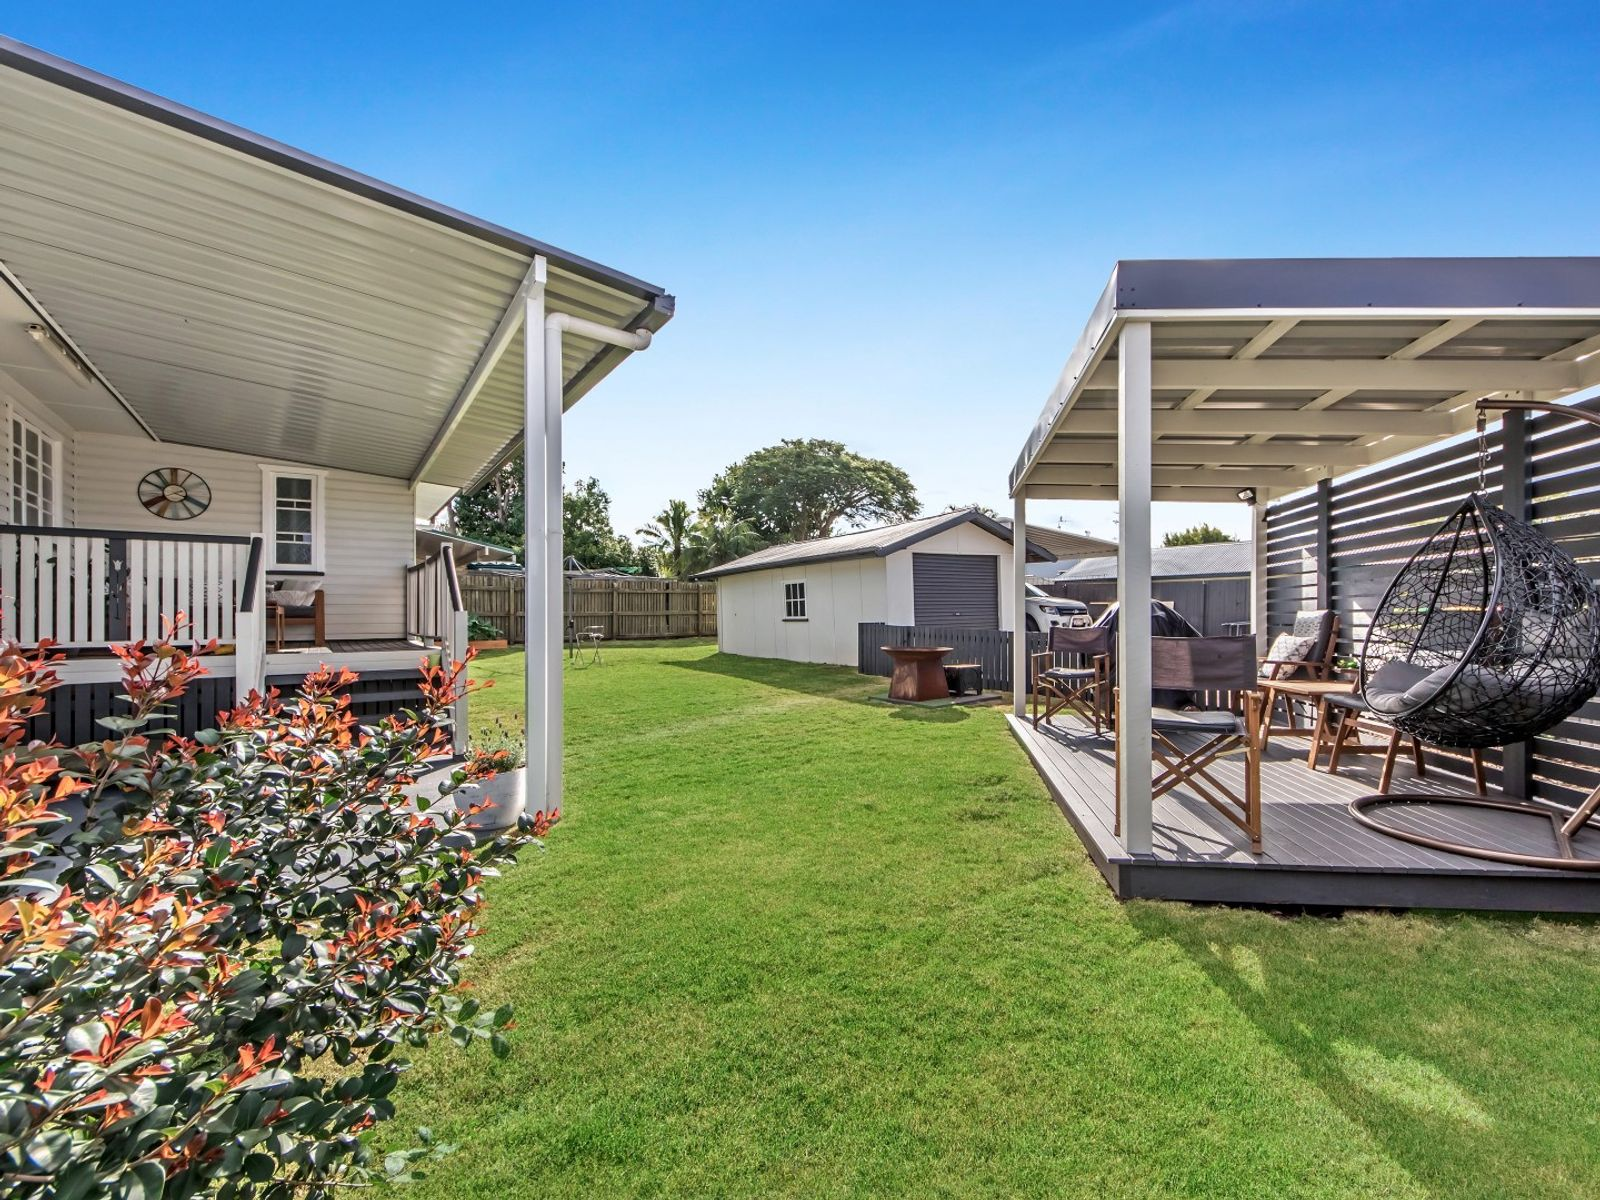 42 Marvin Street, Eastern Heights, QLD 4305